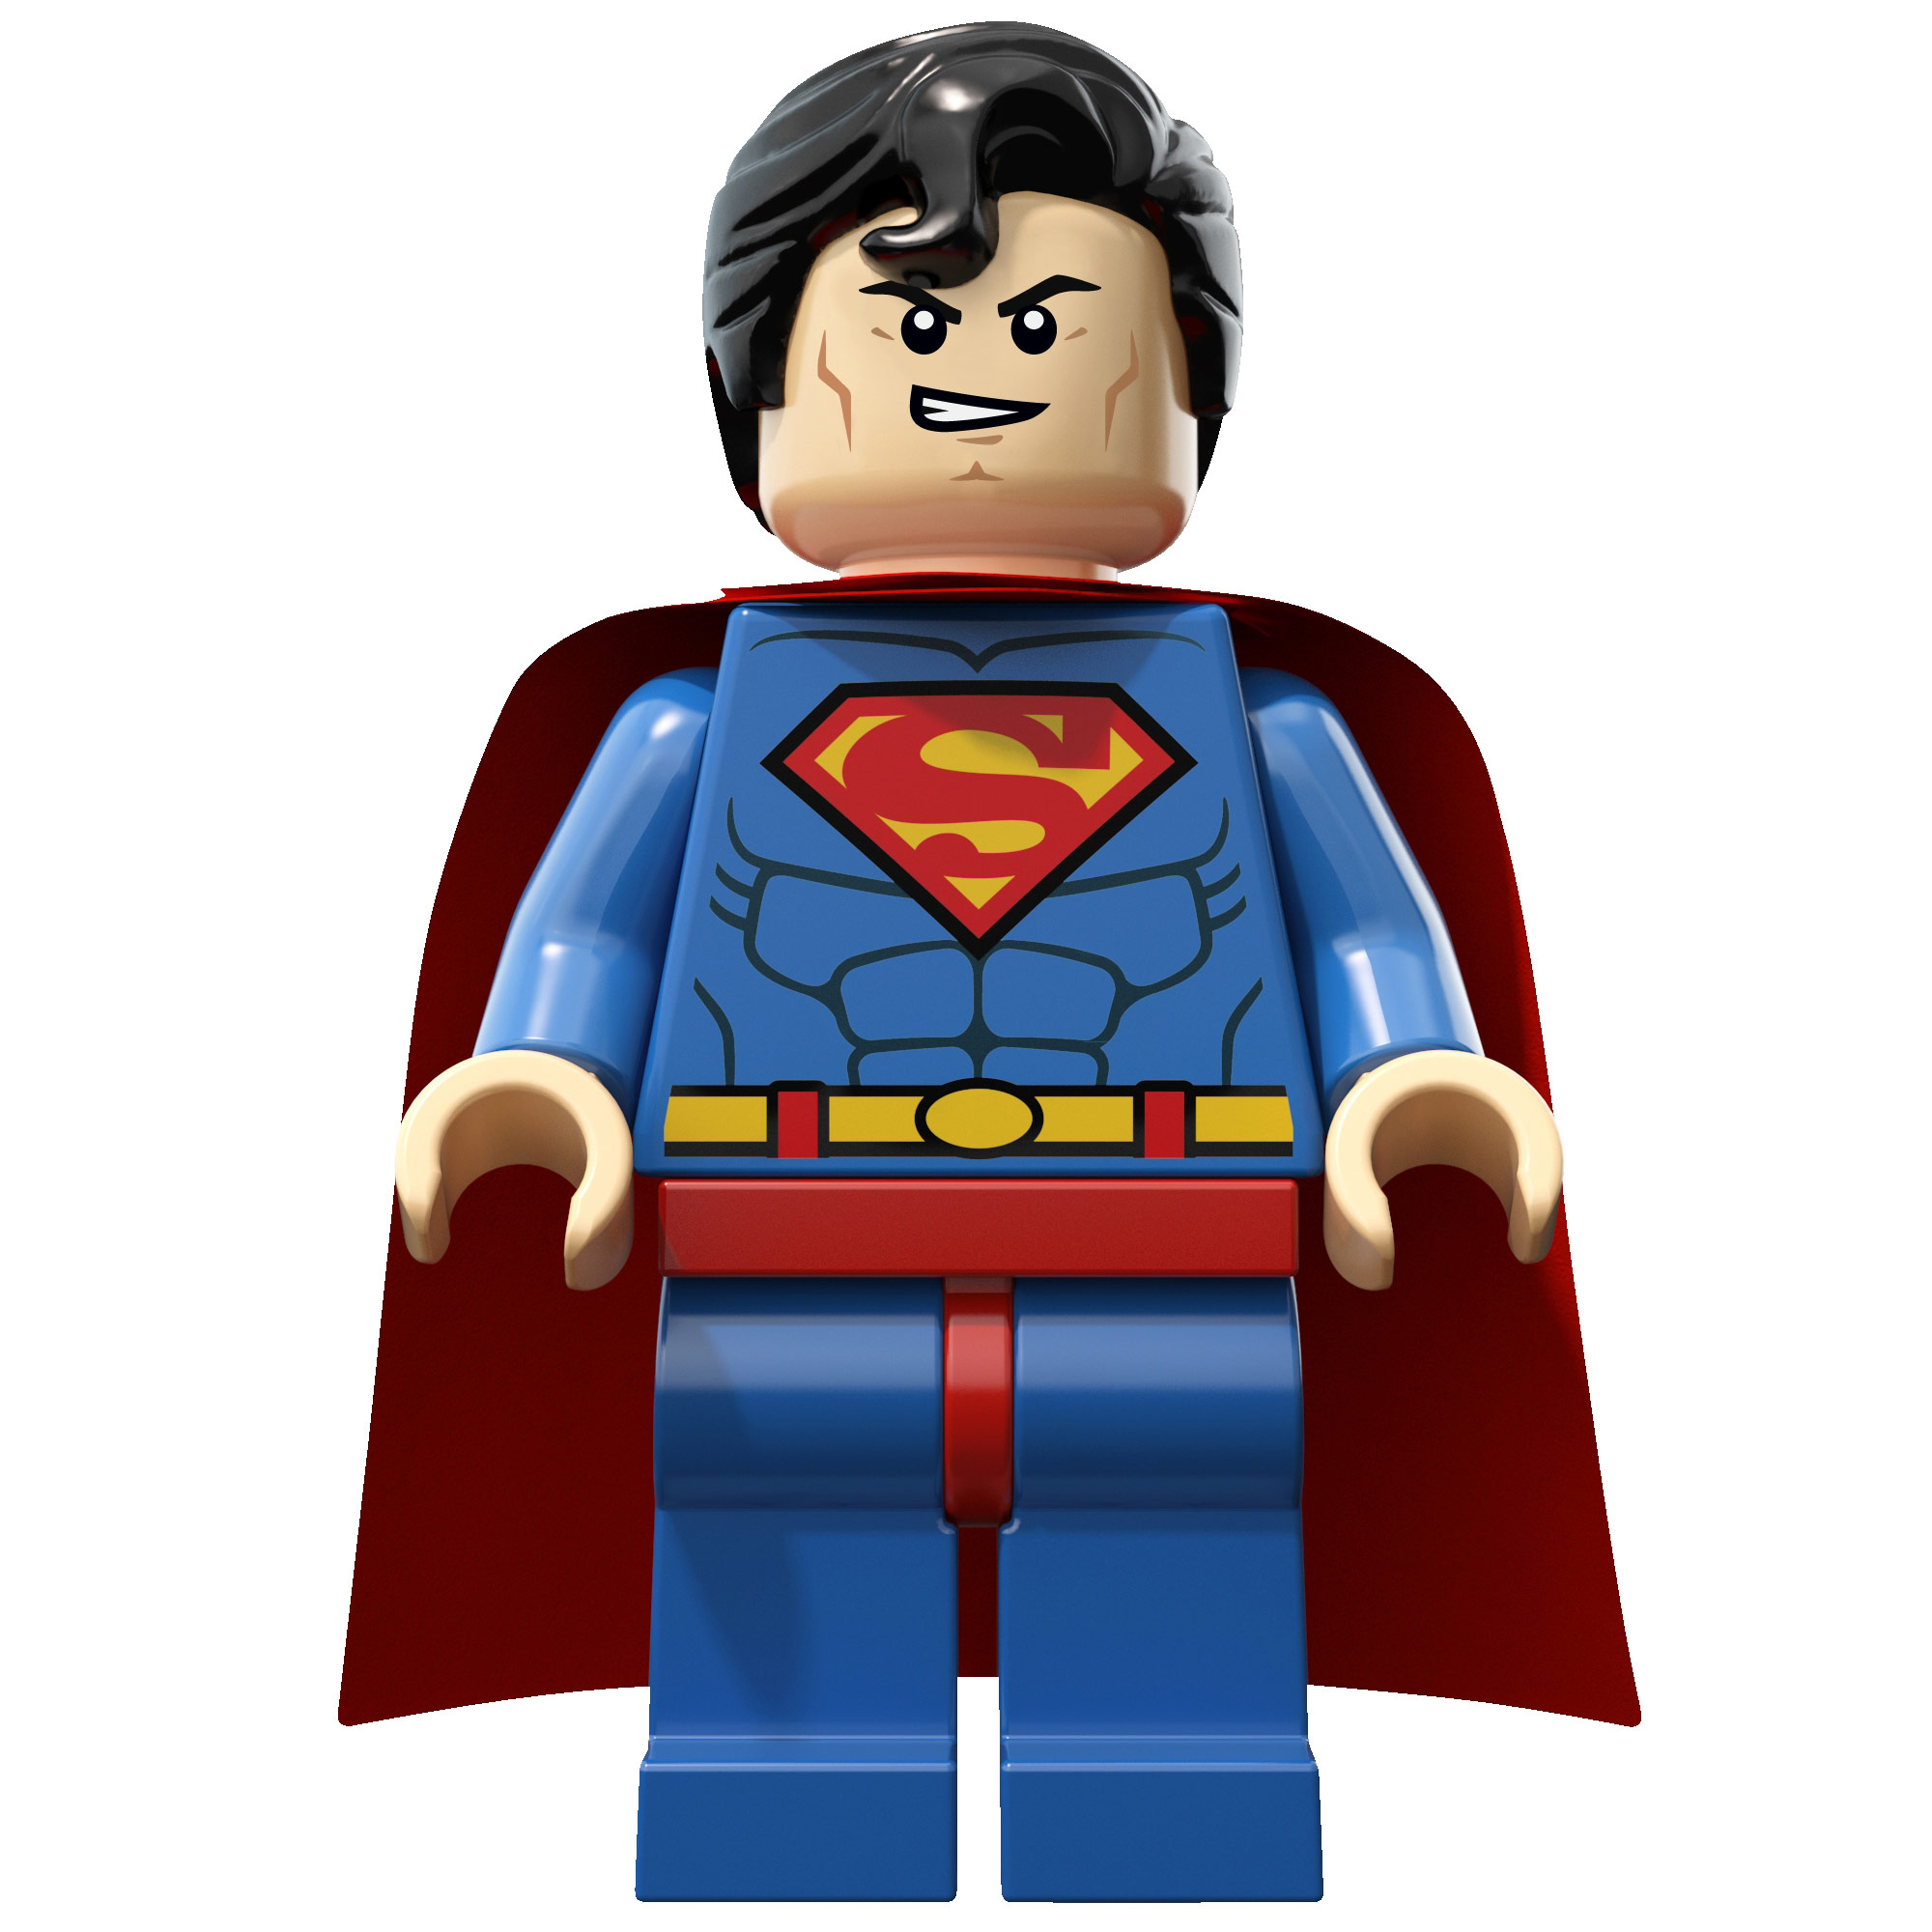 2000x2000 Superman Clipart Lego Superhero